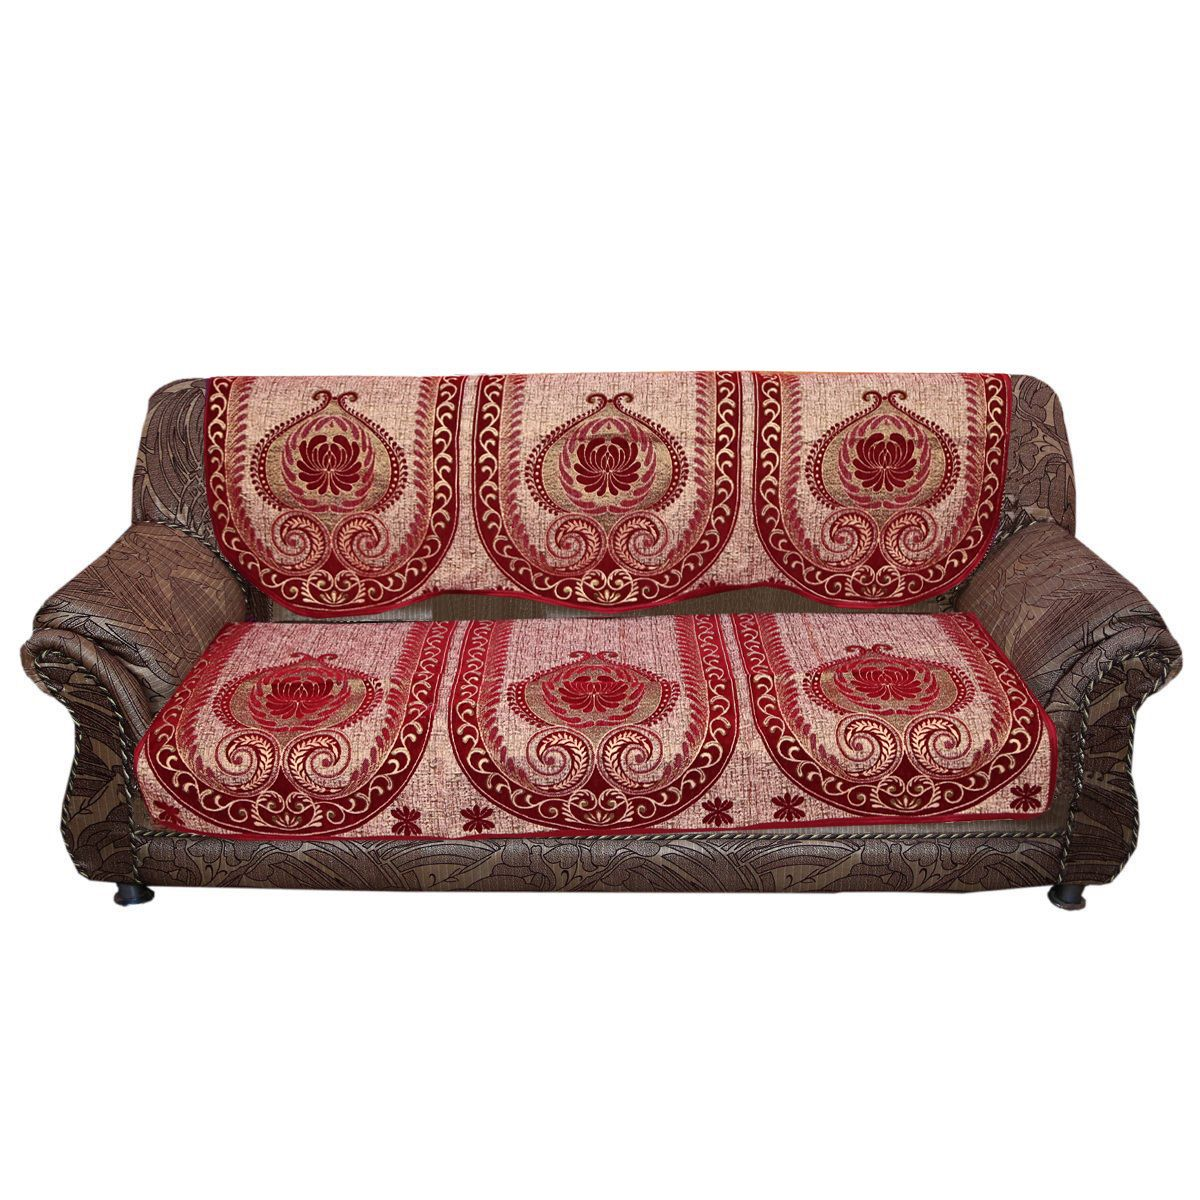 Kuber Industries™ Sofa Cover Heavy Velvet Cloth 5 Seater Set -10 Pieces- Maroon & Golden (Exclusive Design) (Code-SFC22)